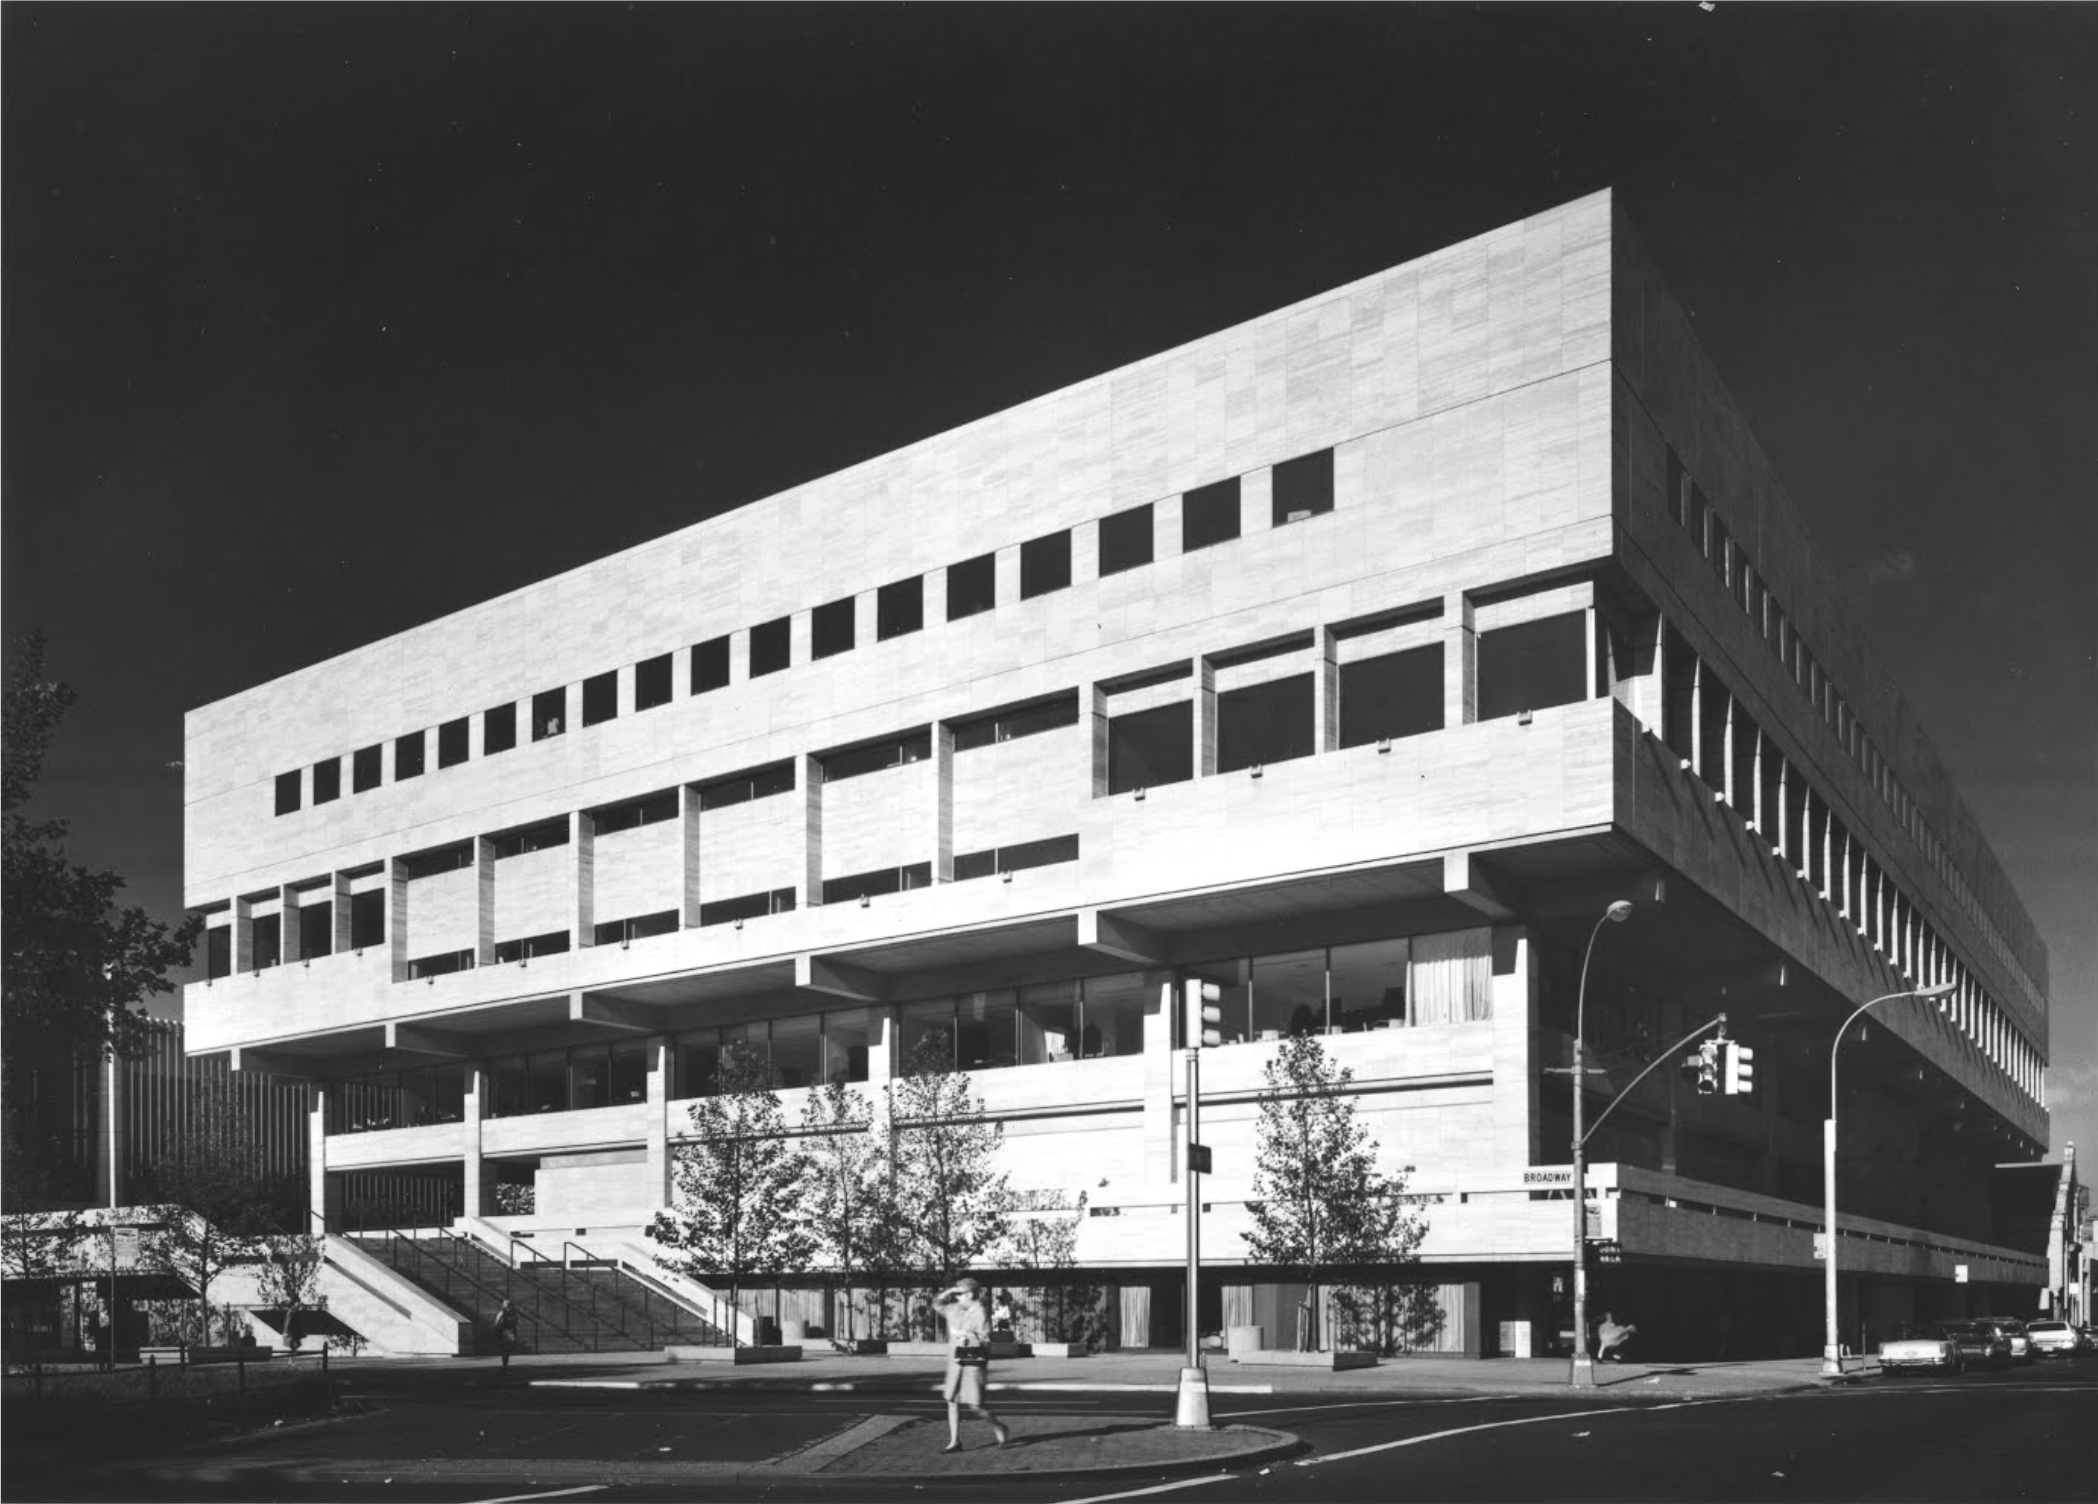 View of The Juilliard School, looking southwest, which shows the Broadway entrance to the school. Credit: Ezra Stoller, From the collection of Lincoln Center for the Performing Arts.